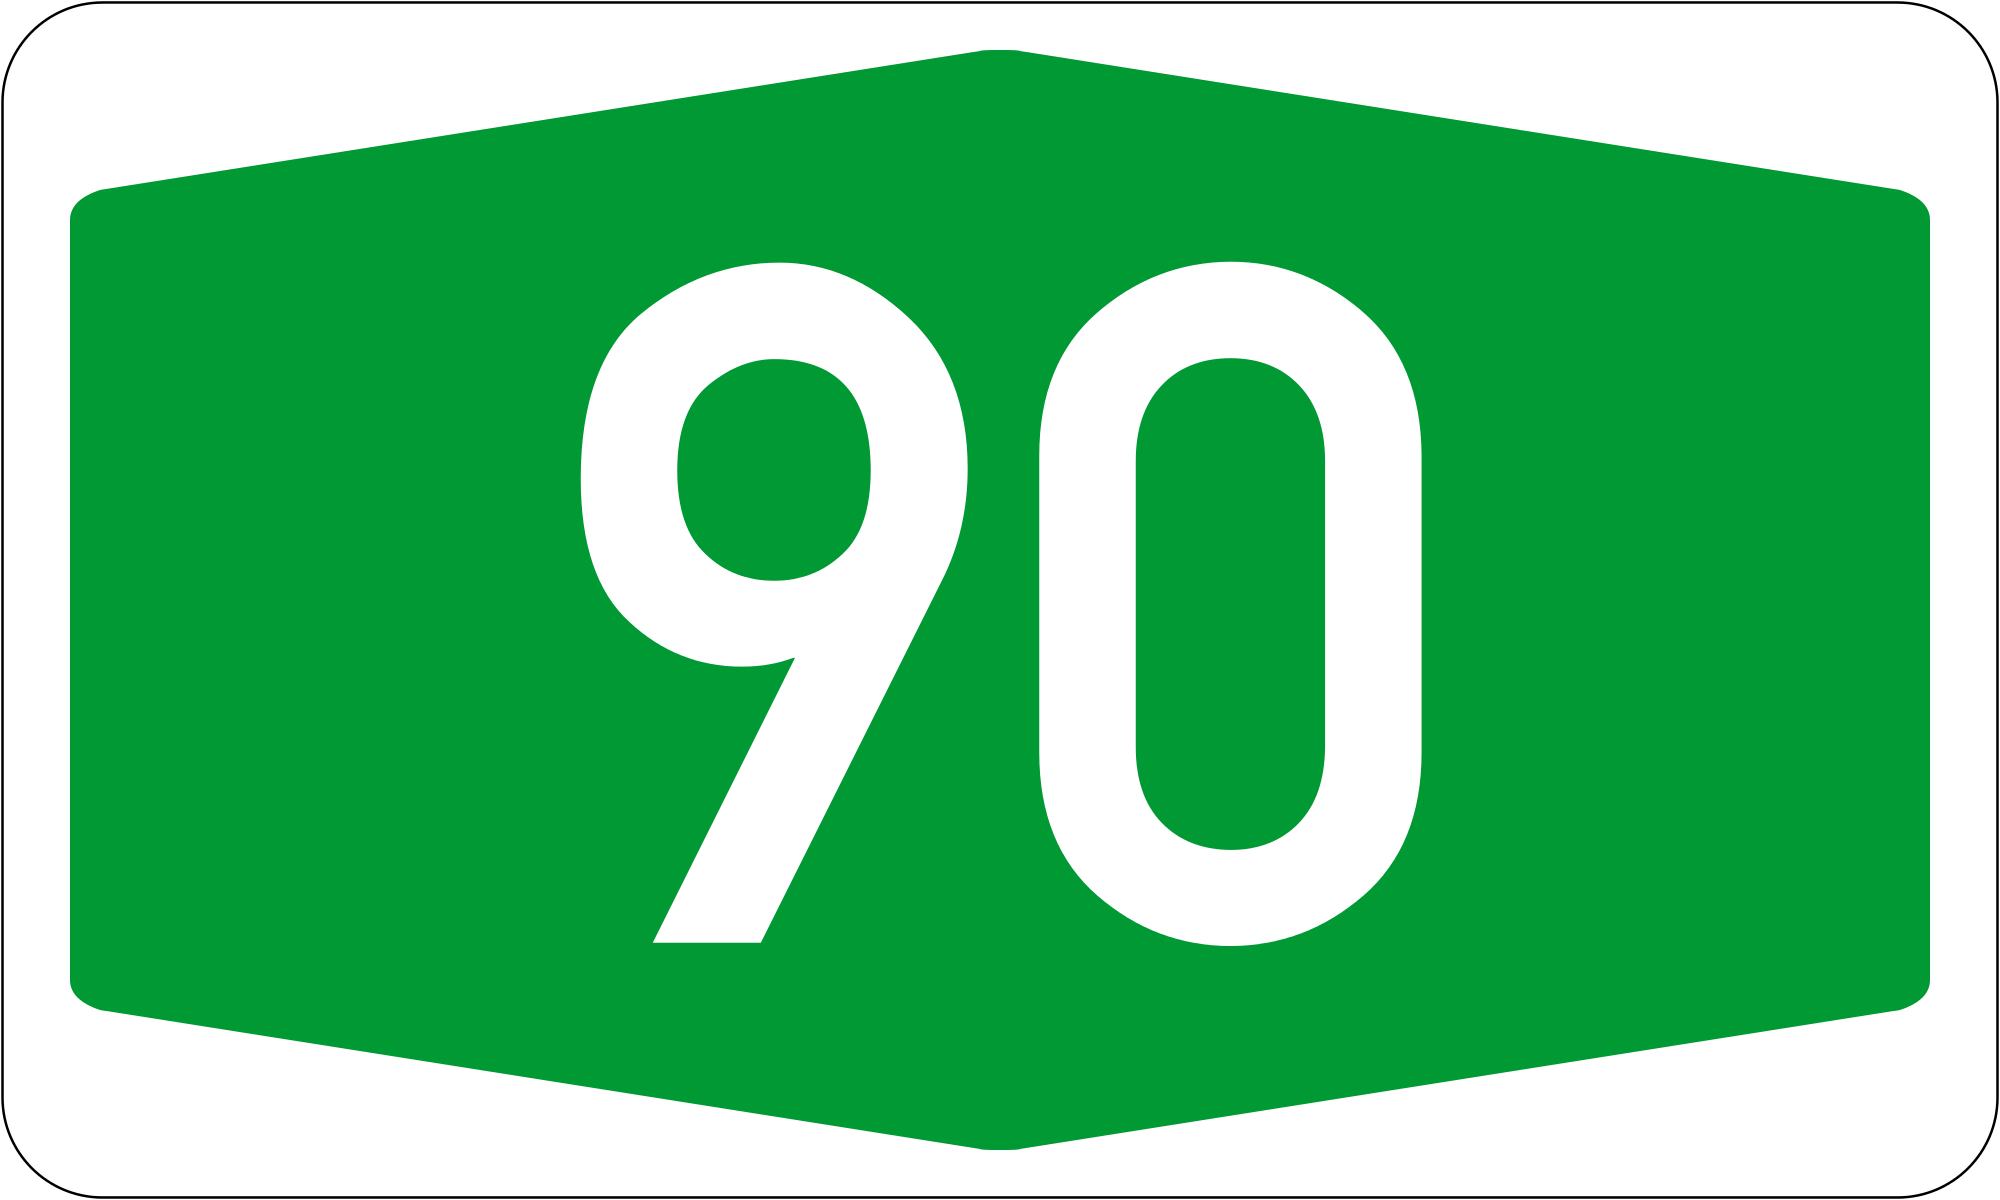 File:Autokinetodromos 90 number.svg.